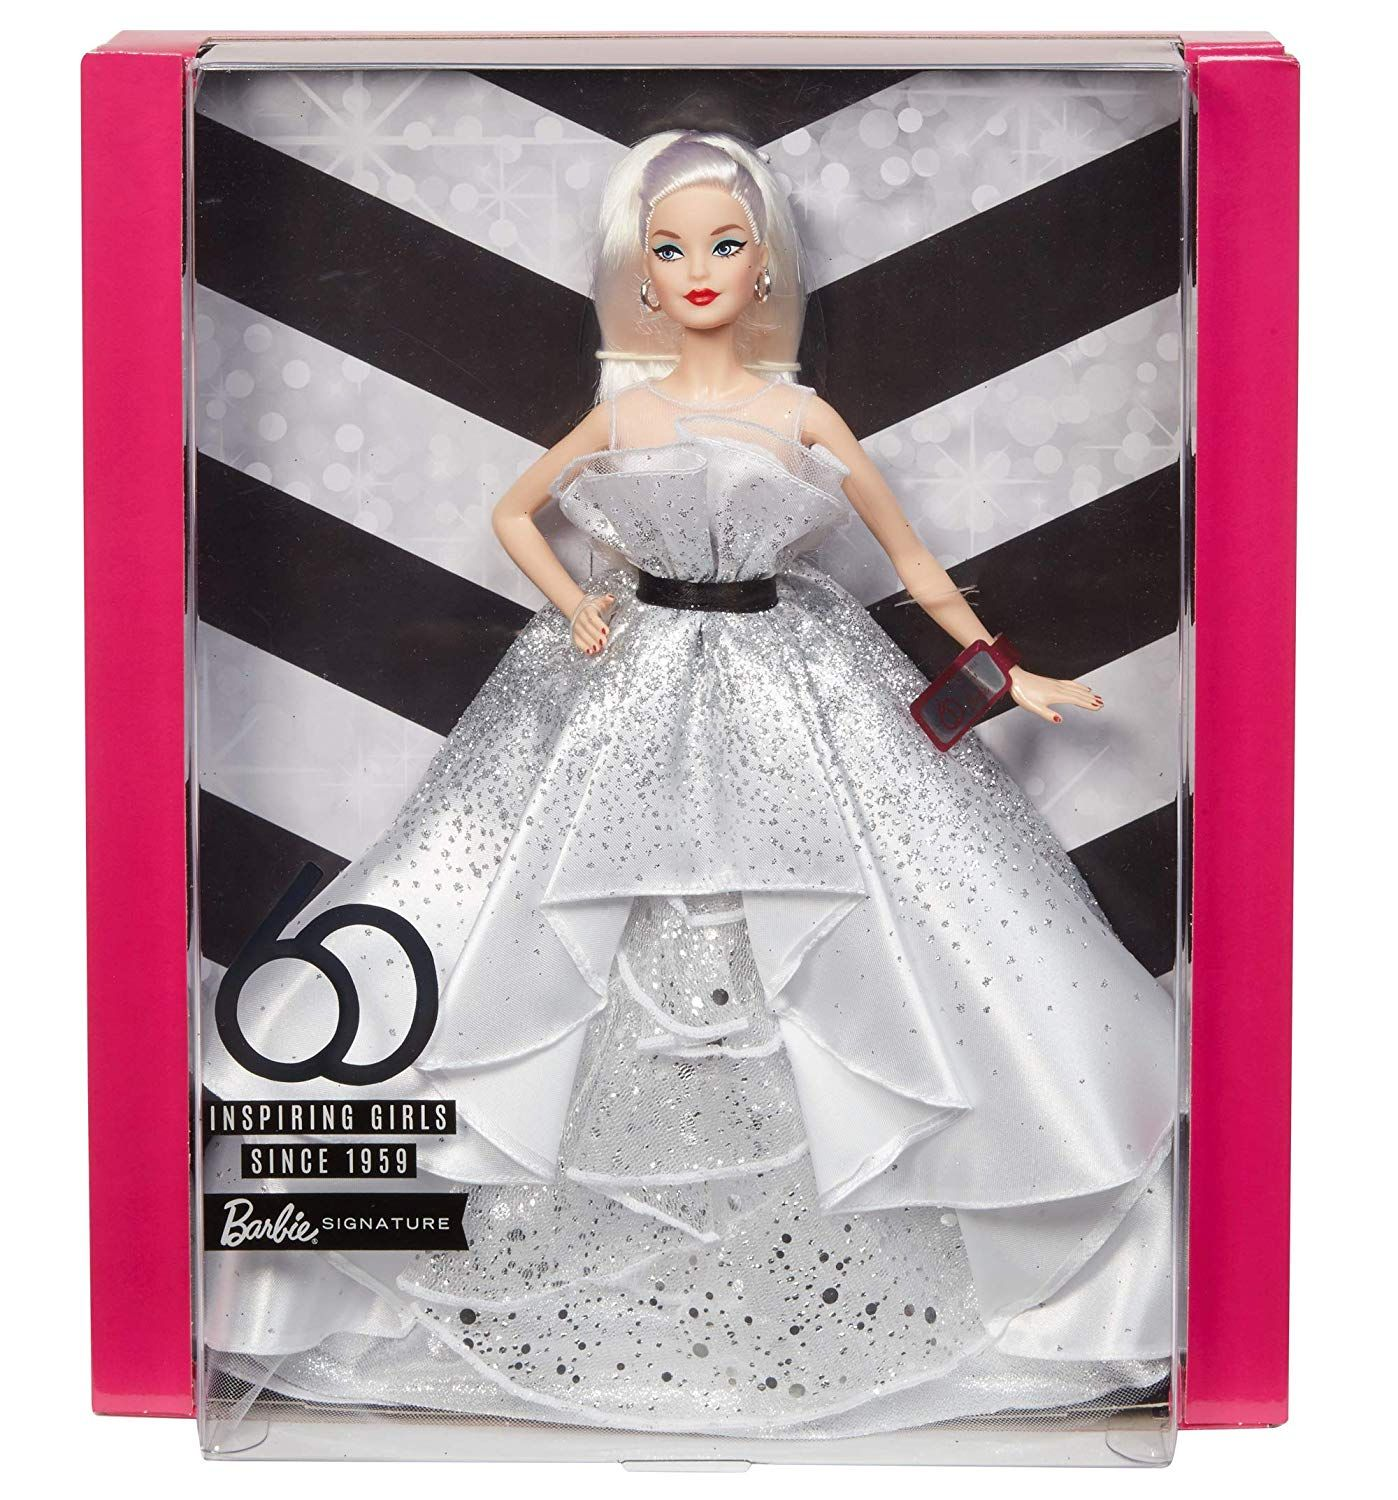 218a8430a34 Amazon.com  Barbie 60th Anniversary Doll  Toys   Games